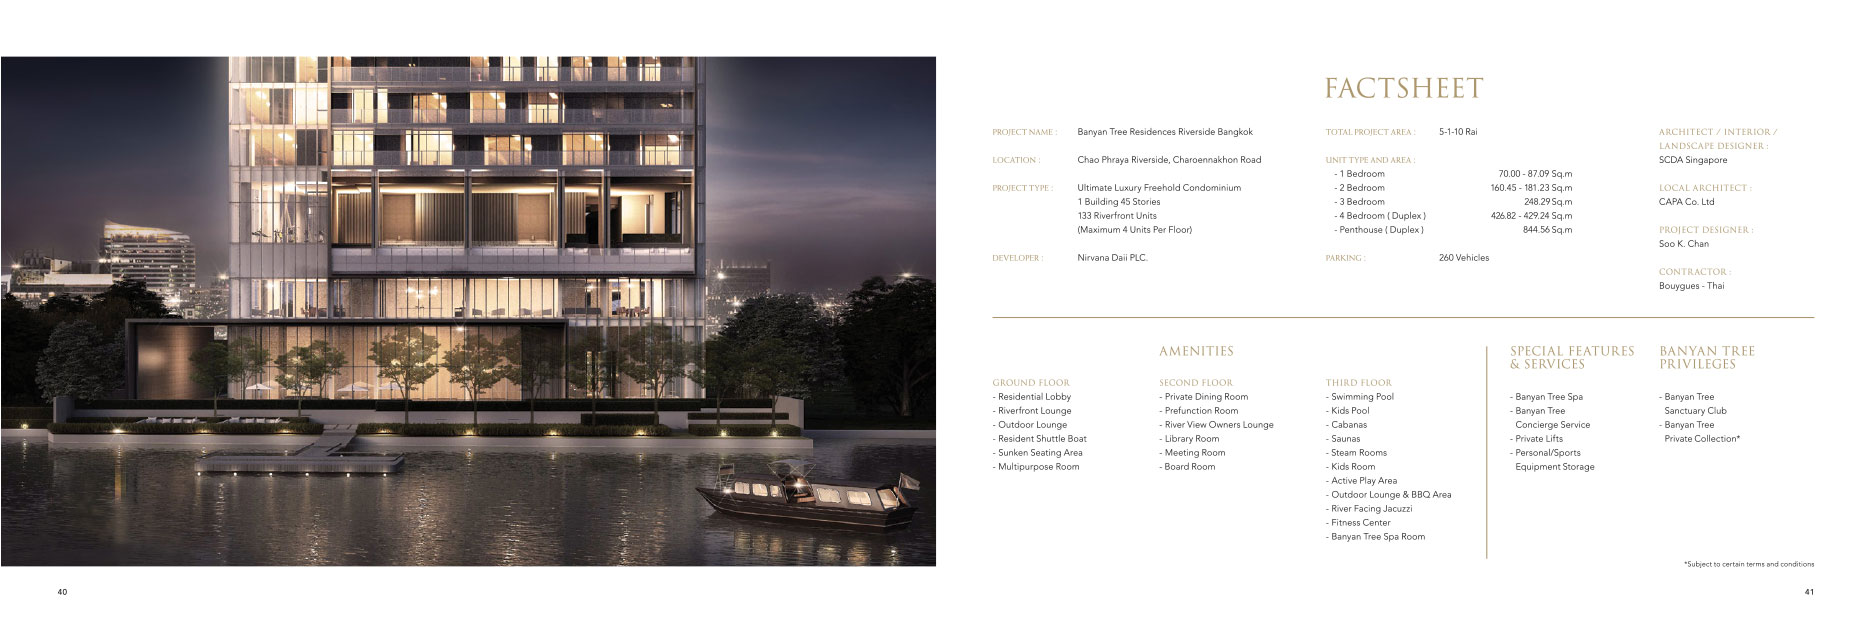 Banyan Tree Residences Riverside Bangkok Brochure 28